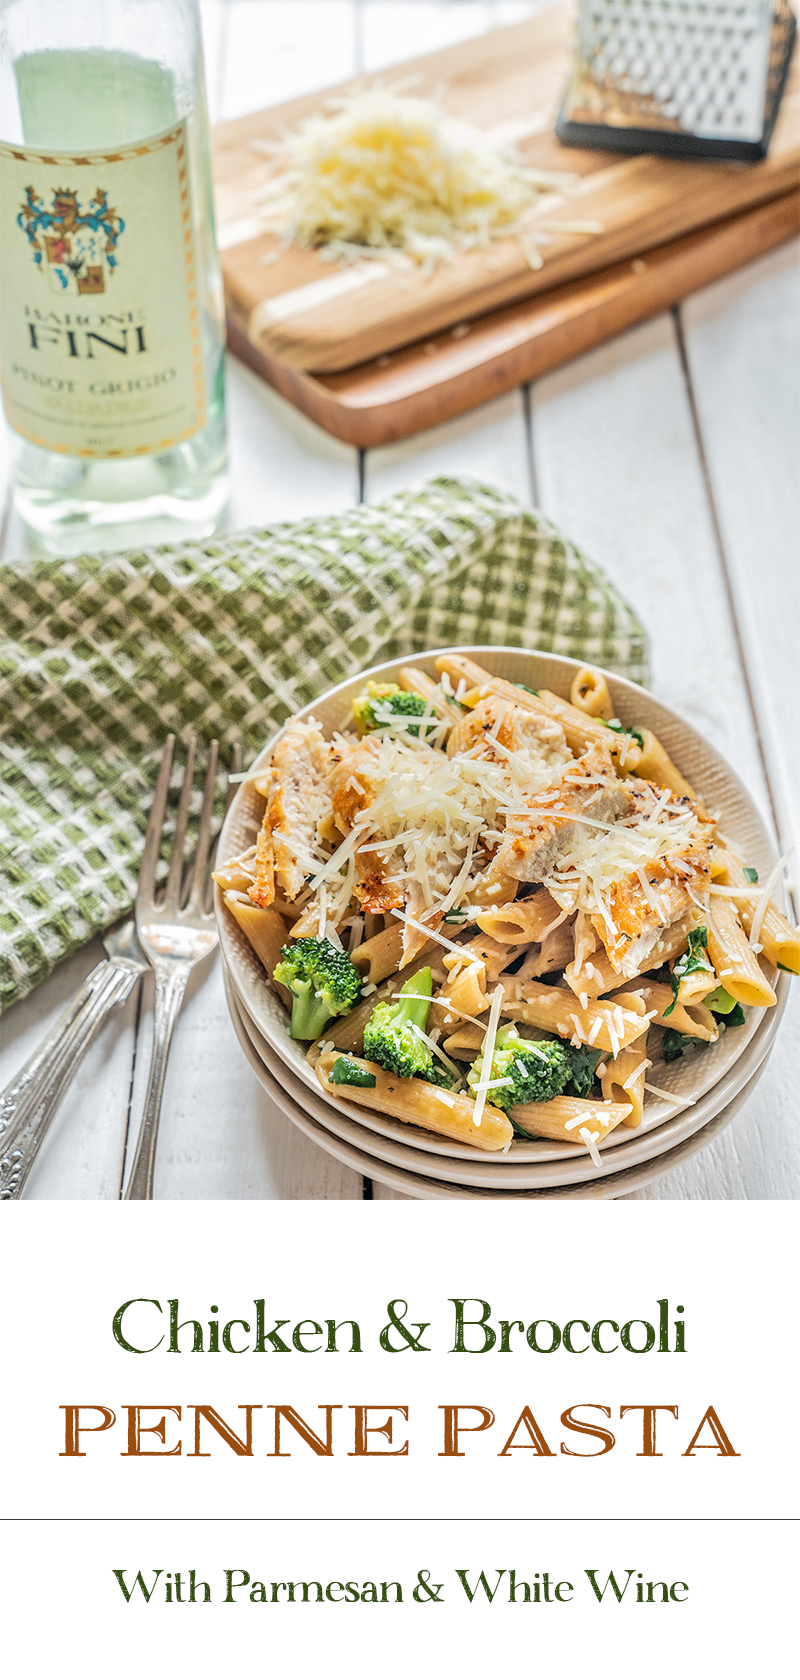 Chicken-and-Broccoli-Penne-Pasta-with-White-Wine-and-Parmesan